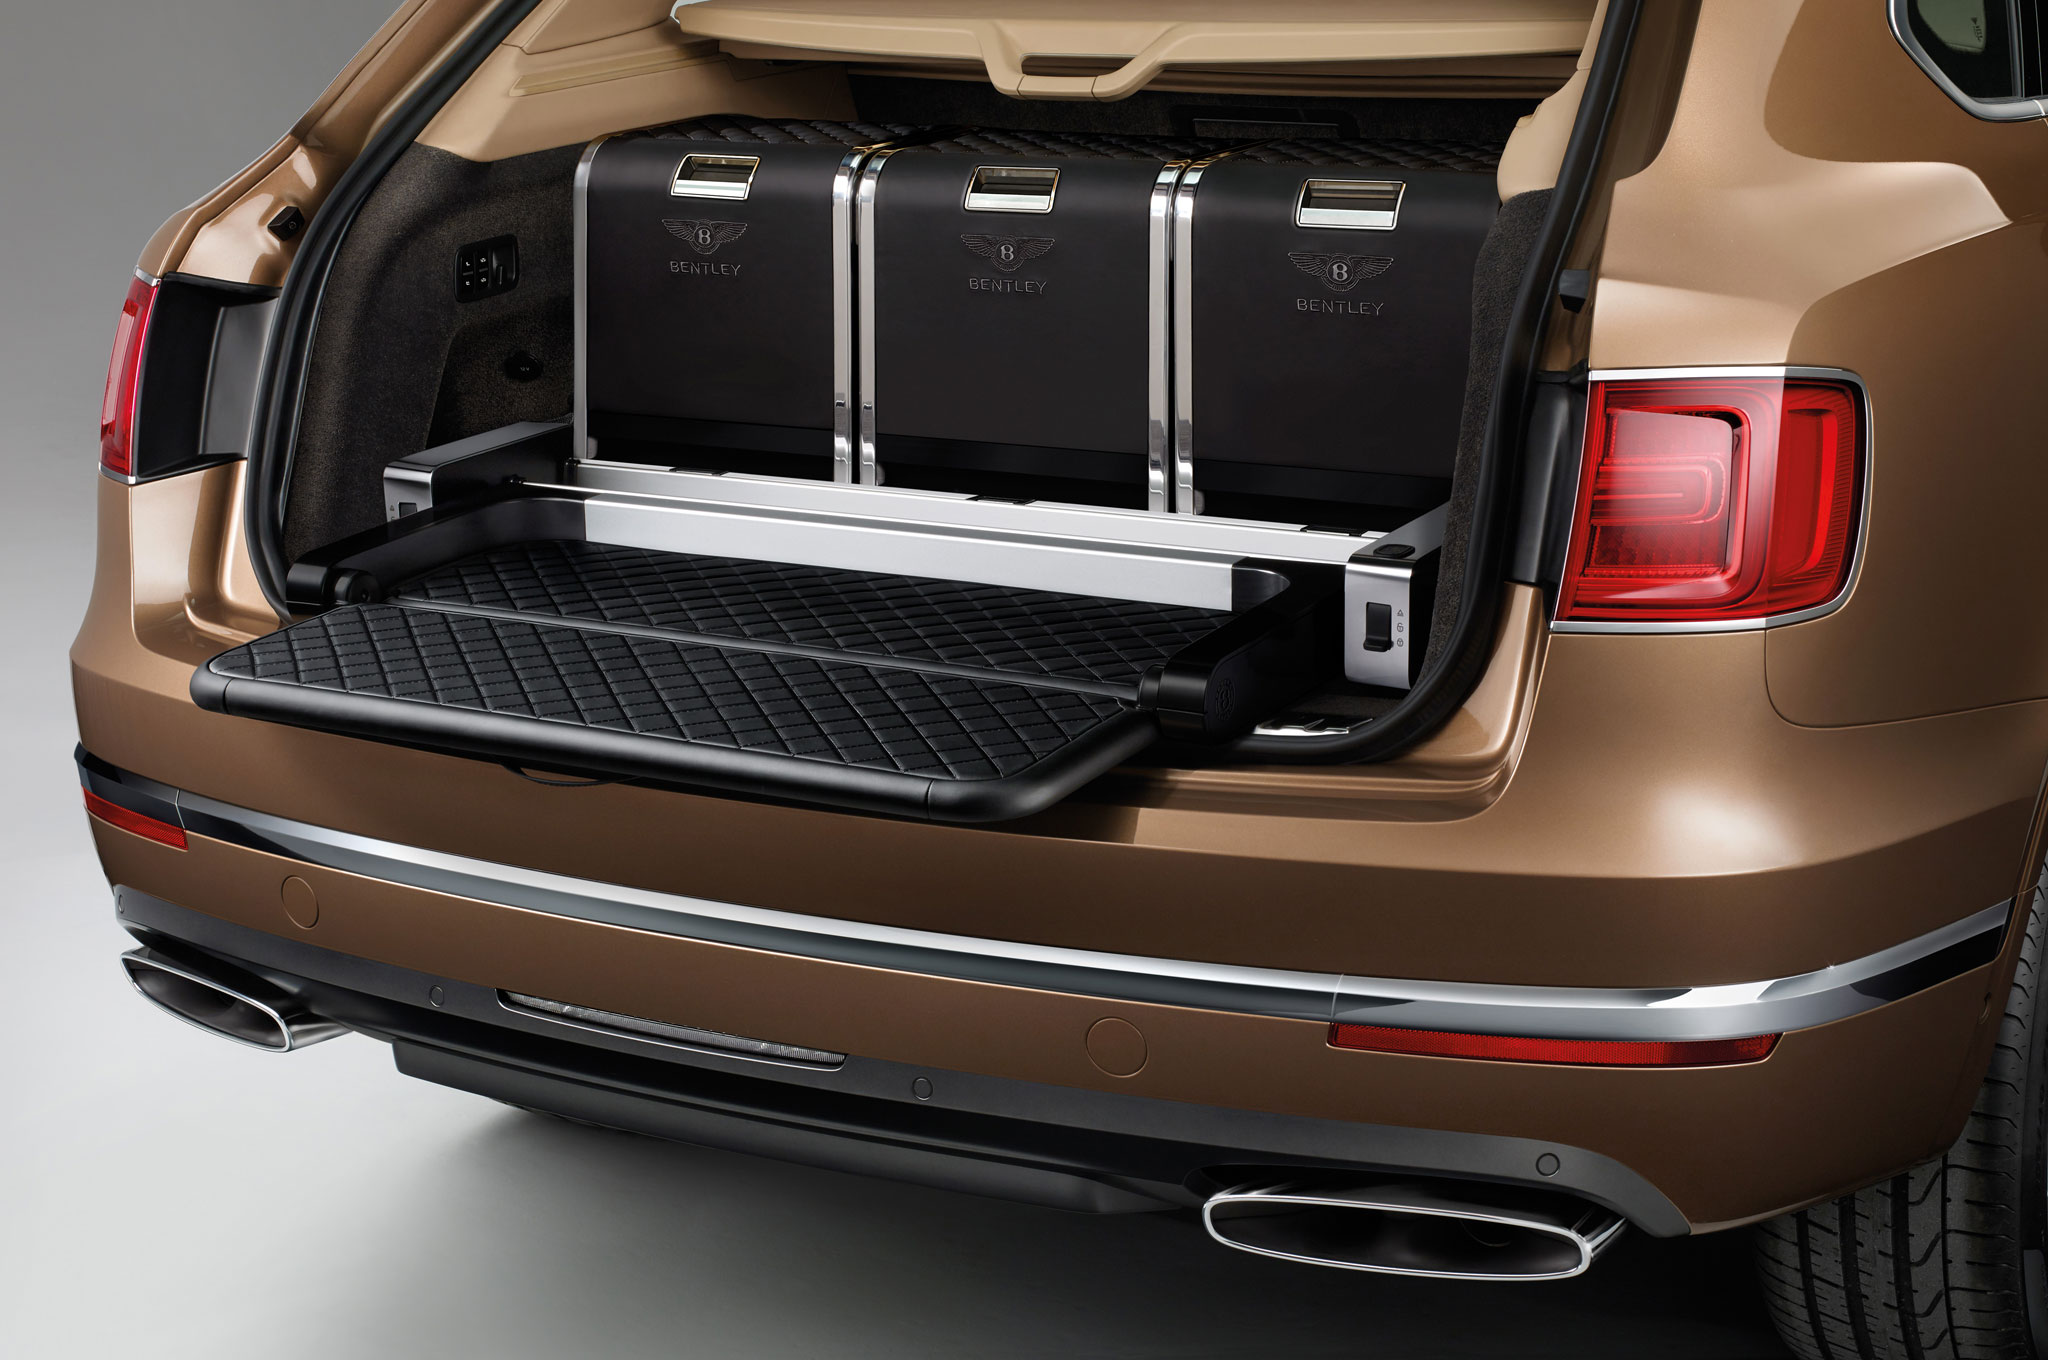 2017 Bentley Bentayga Trunk Space (Photo 16 of 16)